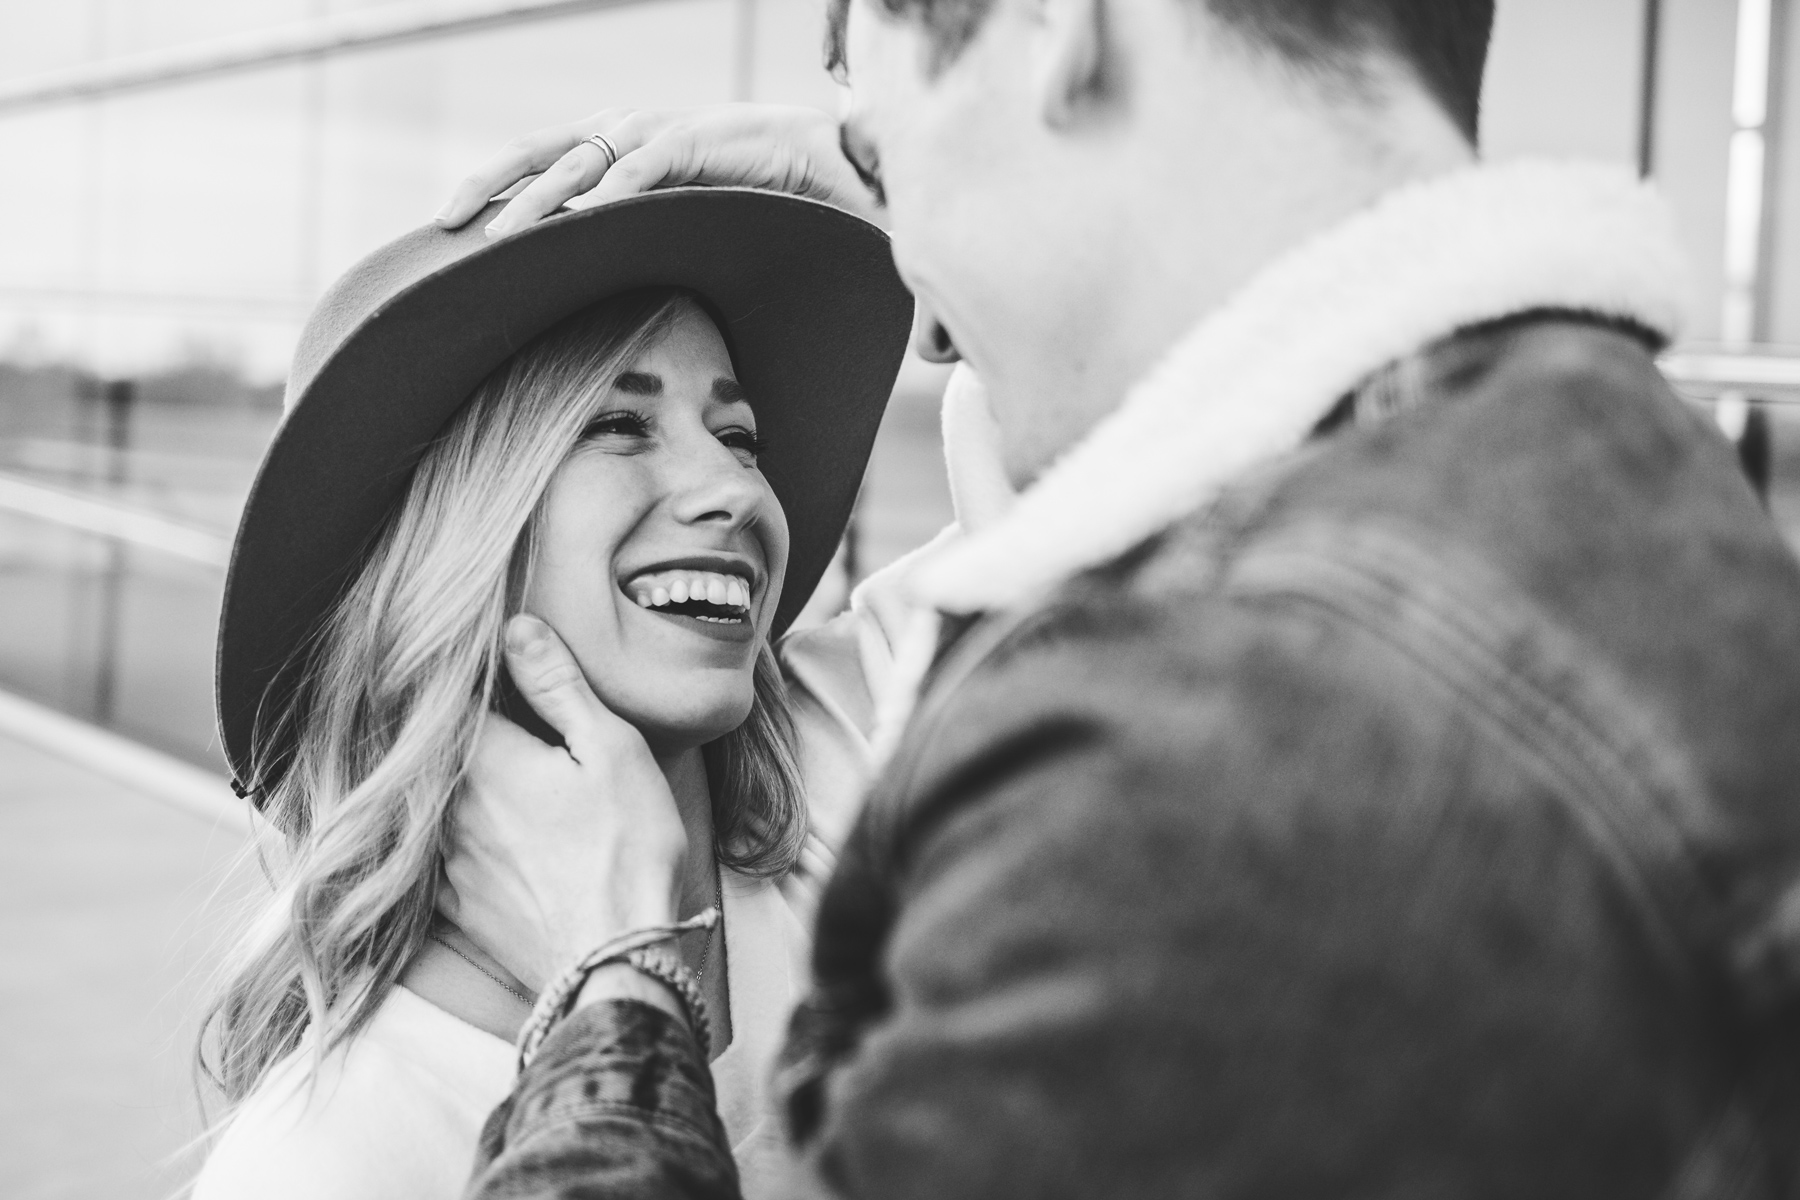 Black and white image of girl wearing a hat laughing while guy pulls her closer to him in Oklahoma City.